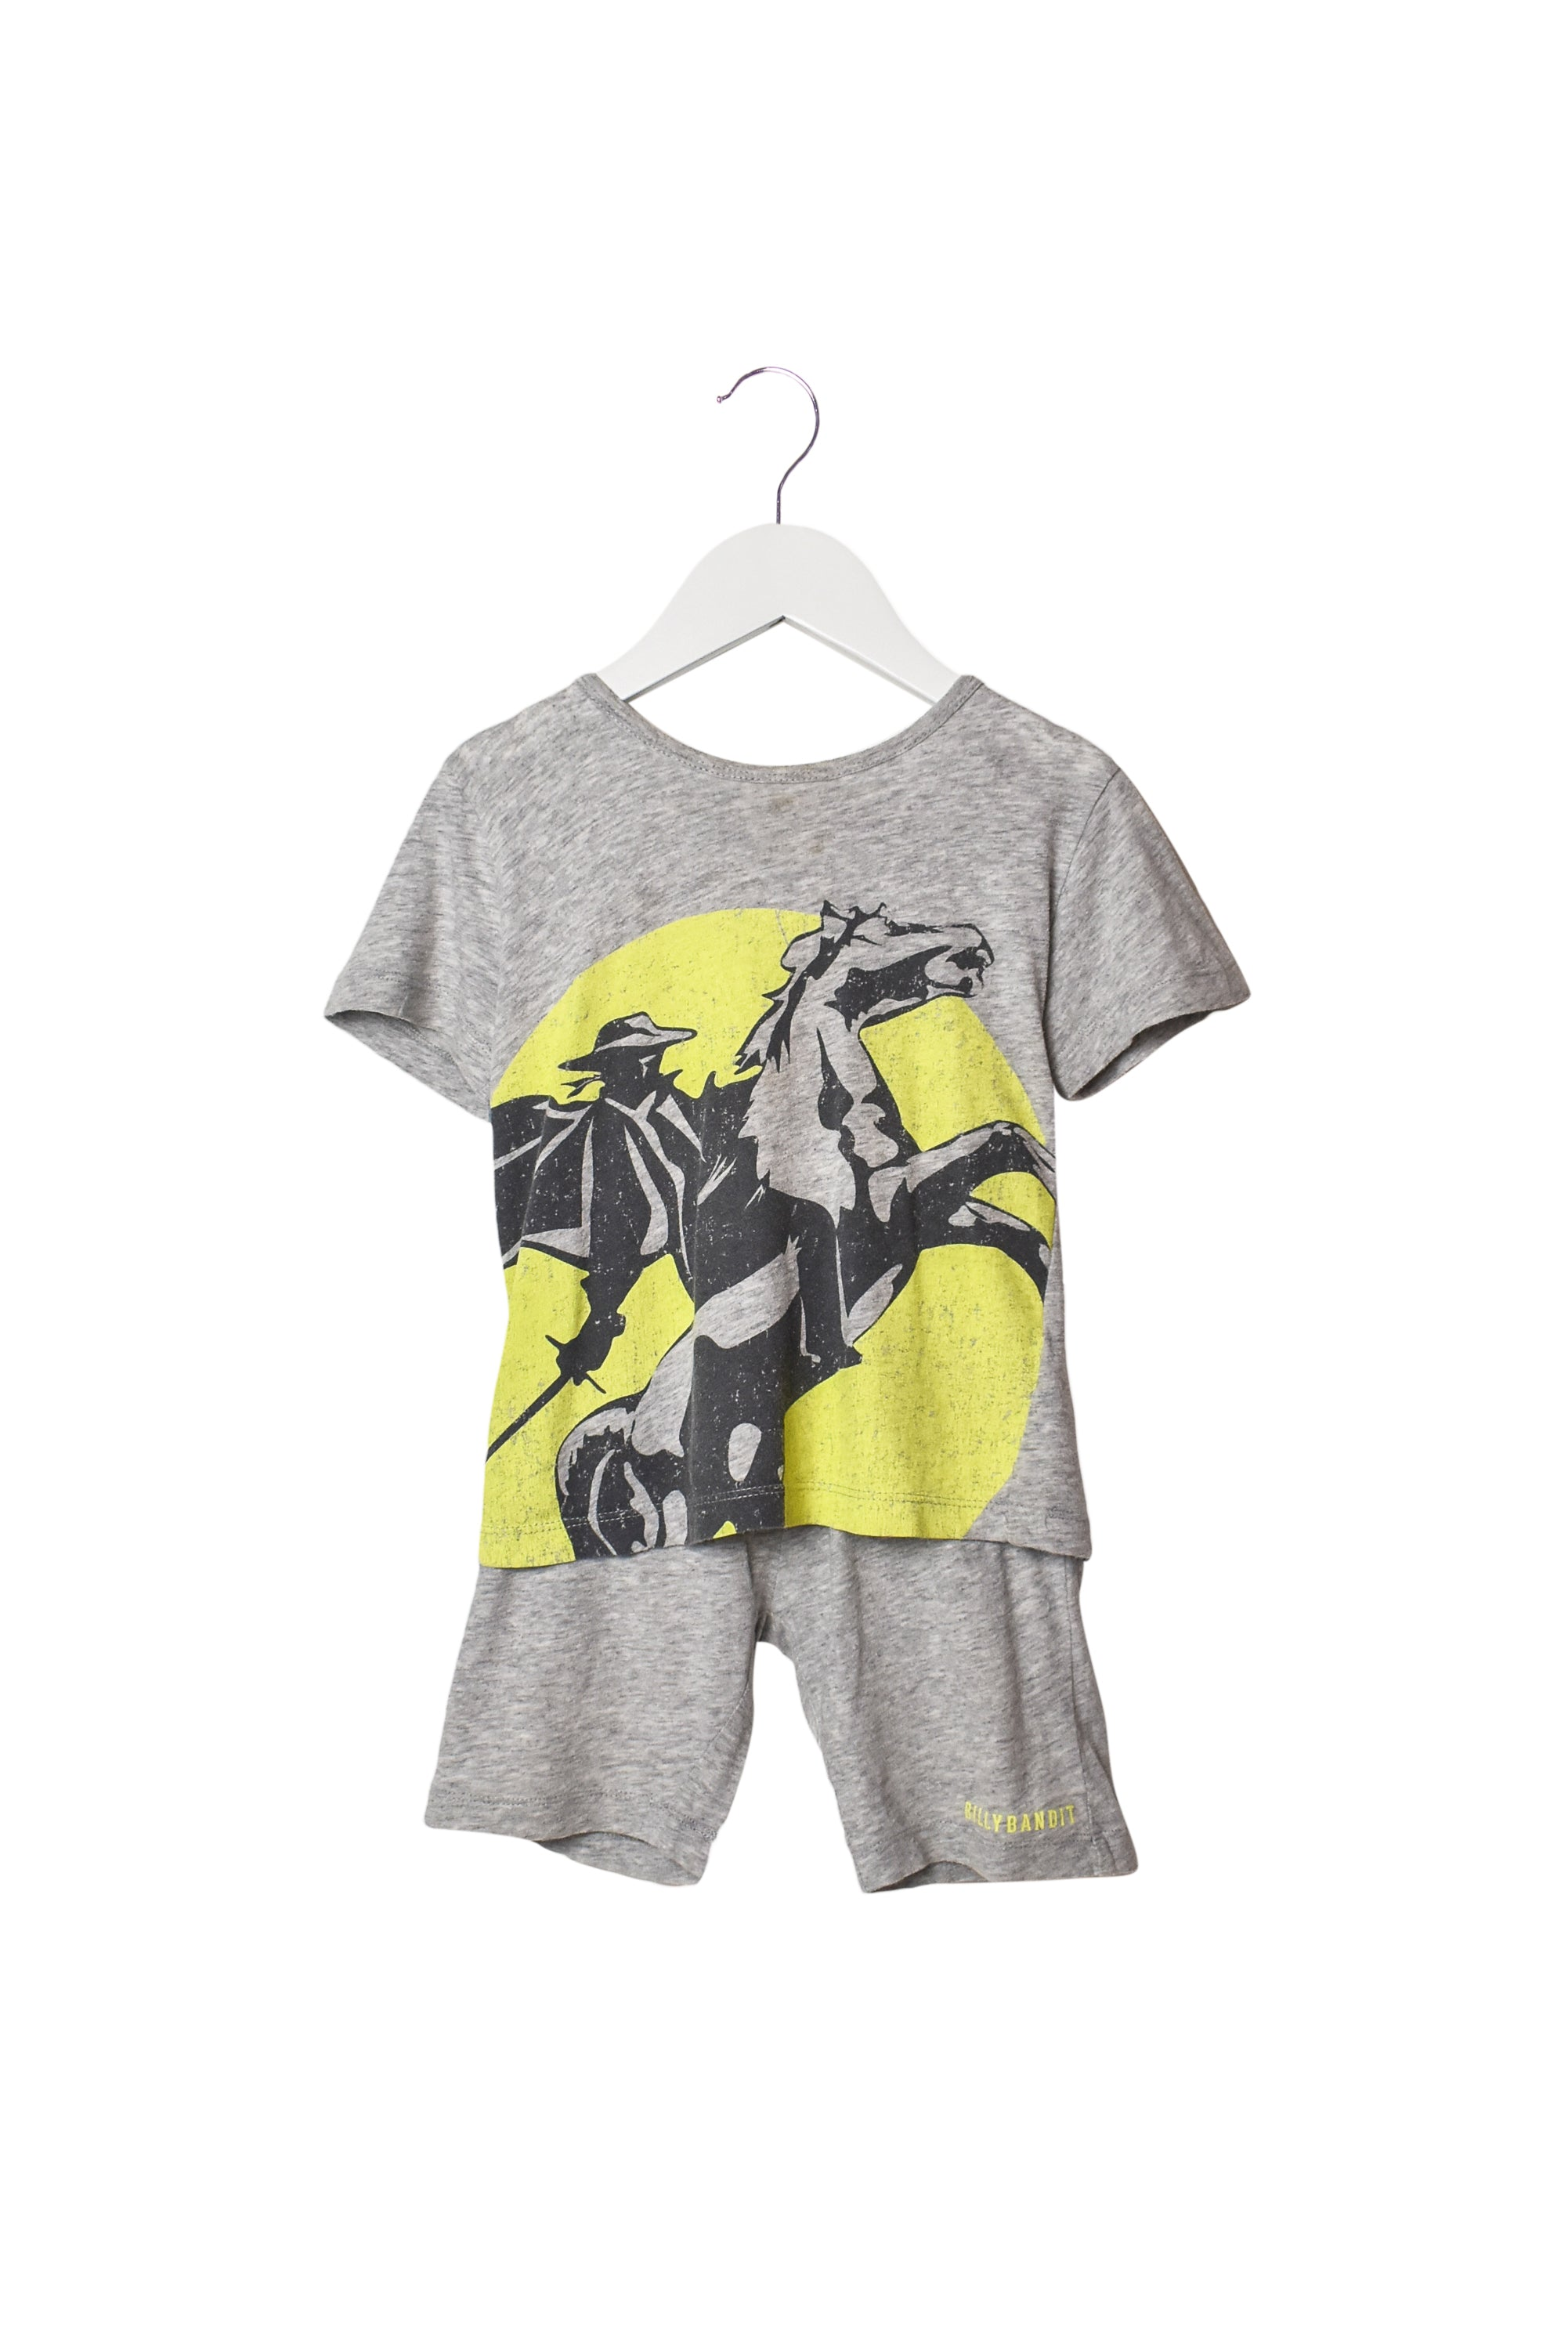 10007896 Billybandit Kids~ Top and Shorts 3T at Retykle